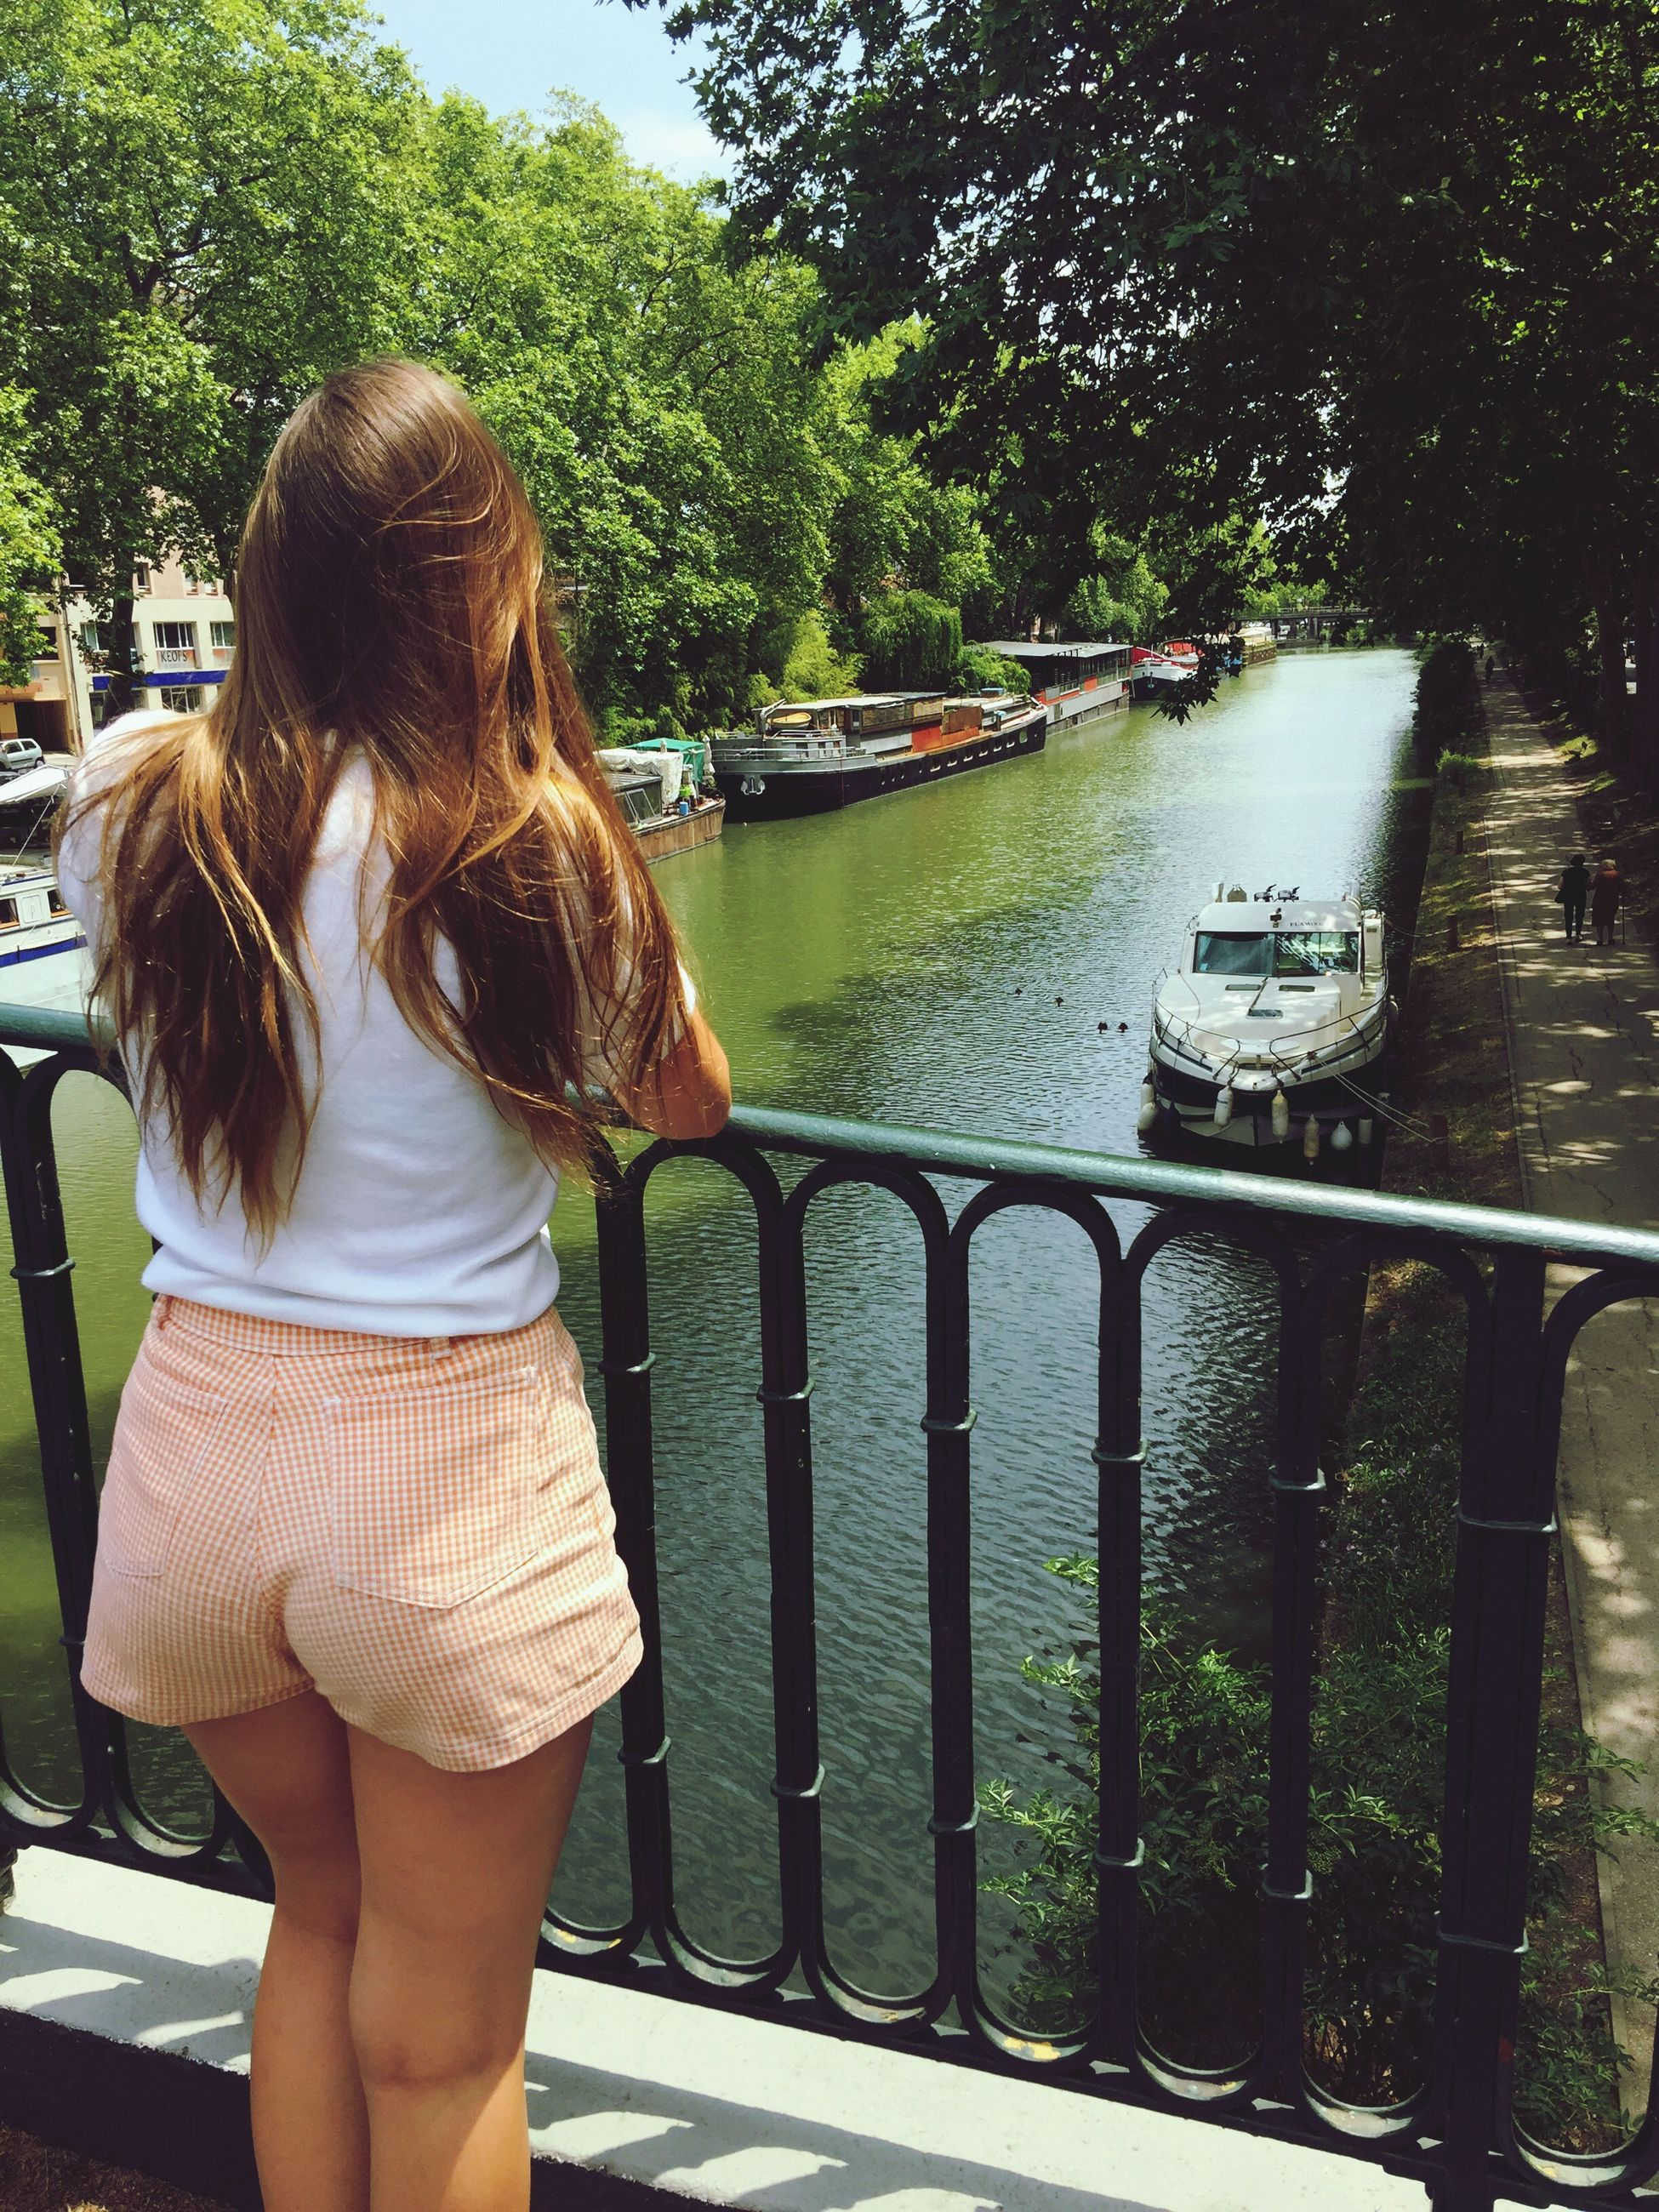 lifestyles, leisure activity, water, casual clothing, rear view, full length, railing, tree, standing, girls, person, river, three quarter length, blond hair, young women, childhood, lake